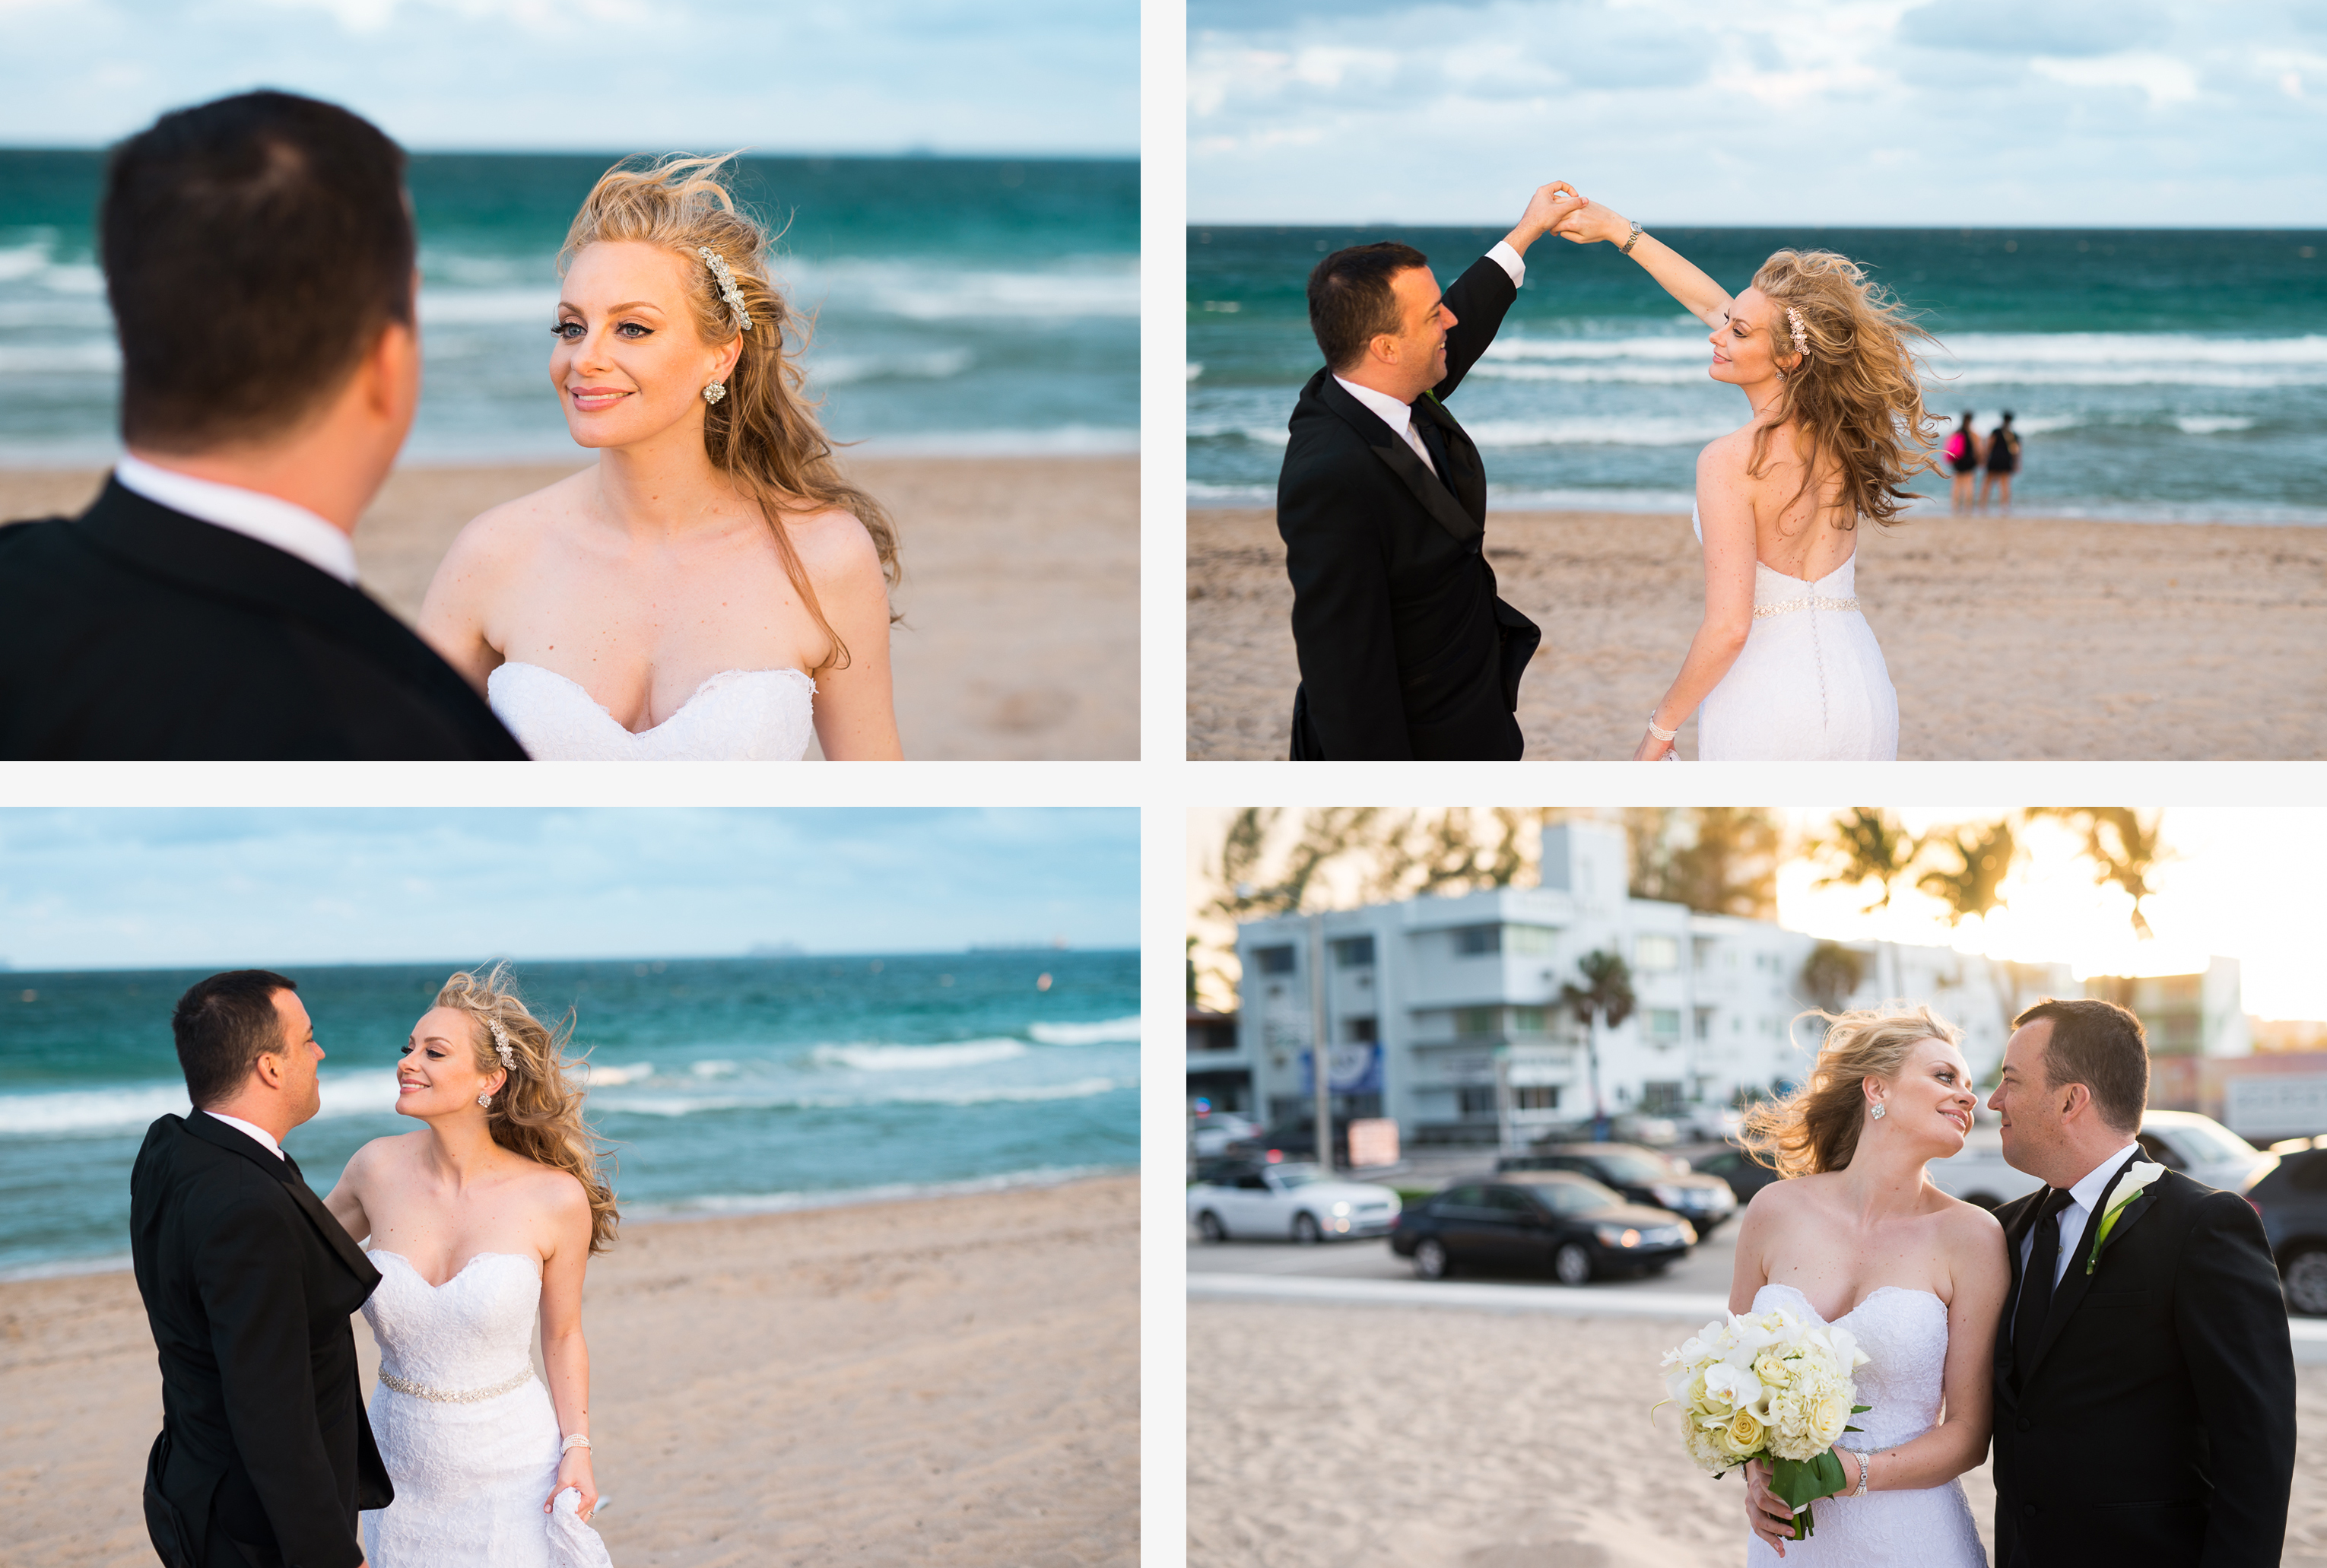 brandwold.se-miami-wedding-fortlauderdale-98